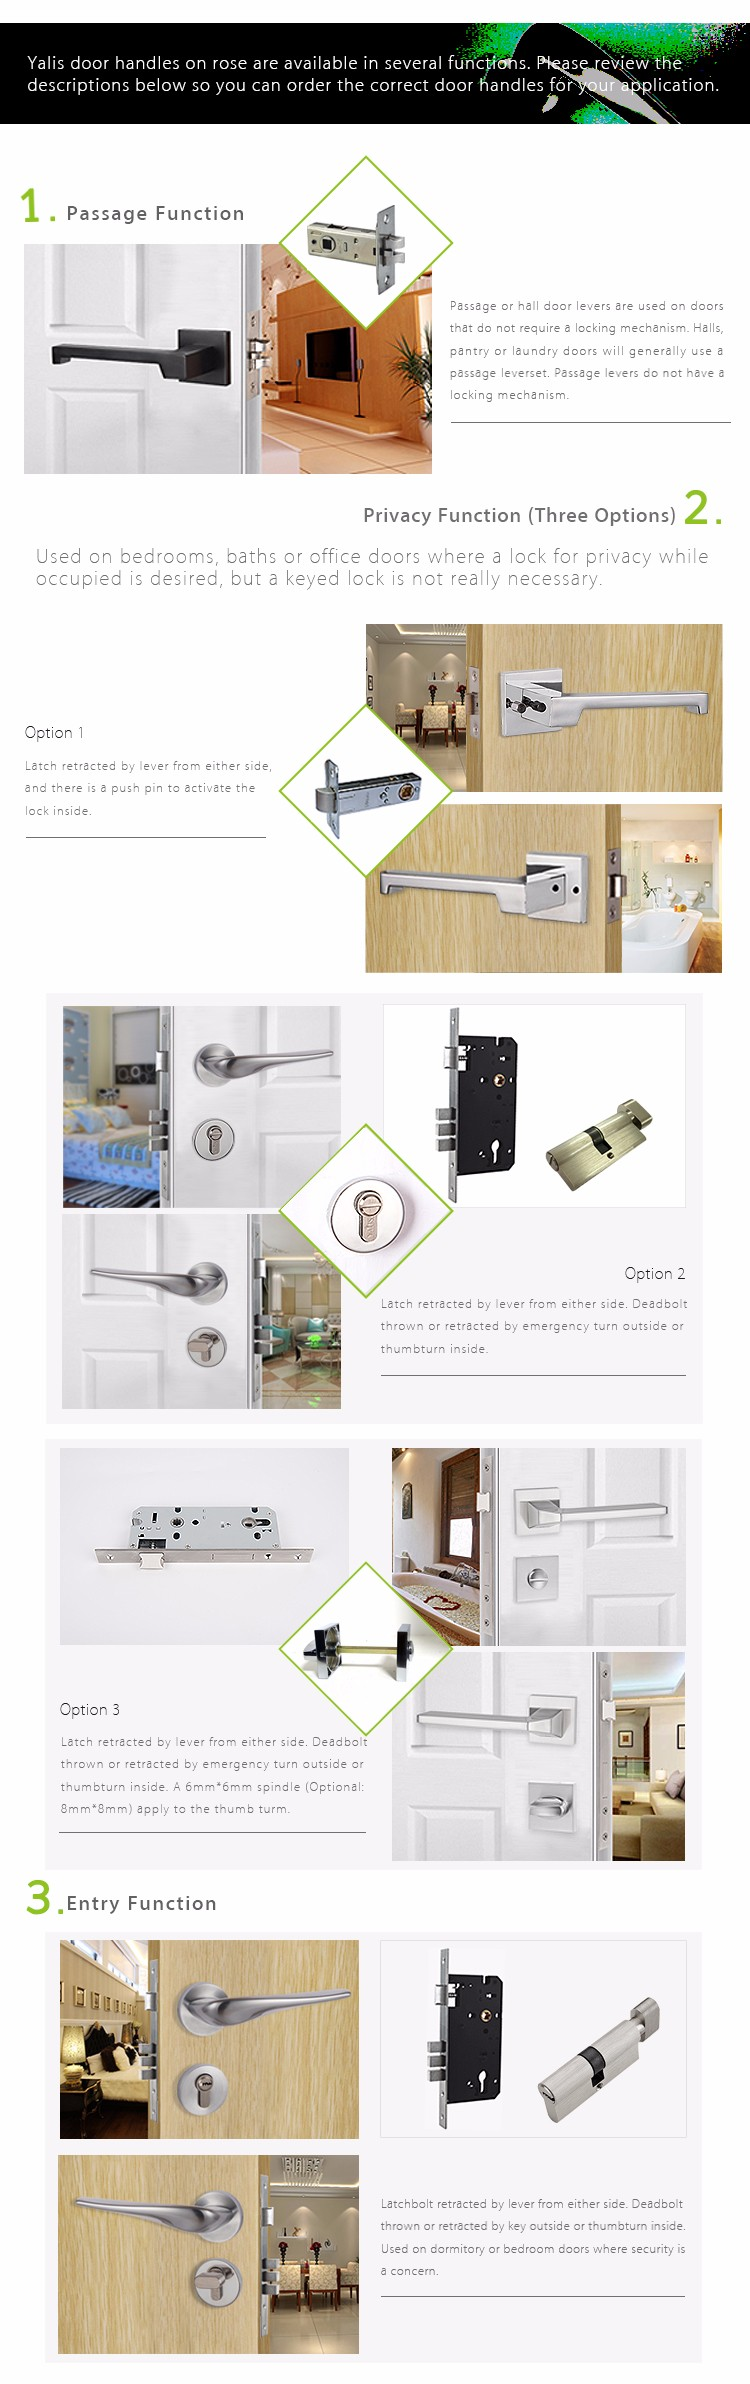 Bedroom Furniture Handles fancy bedroom furniture handles and knobs bathroom safety handle